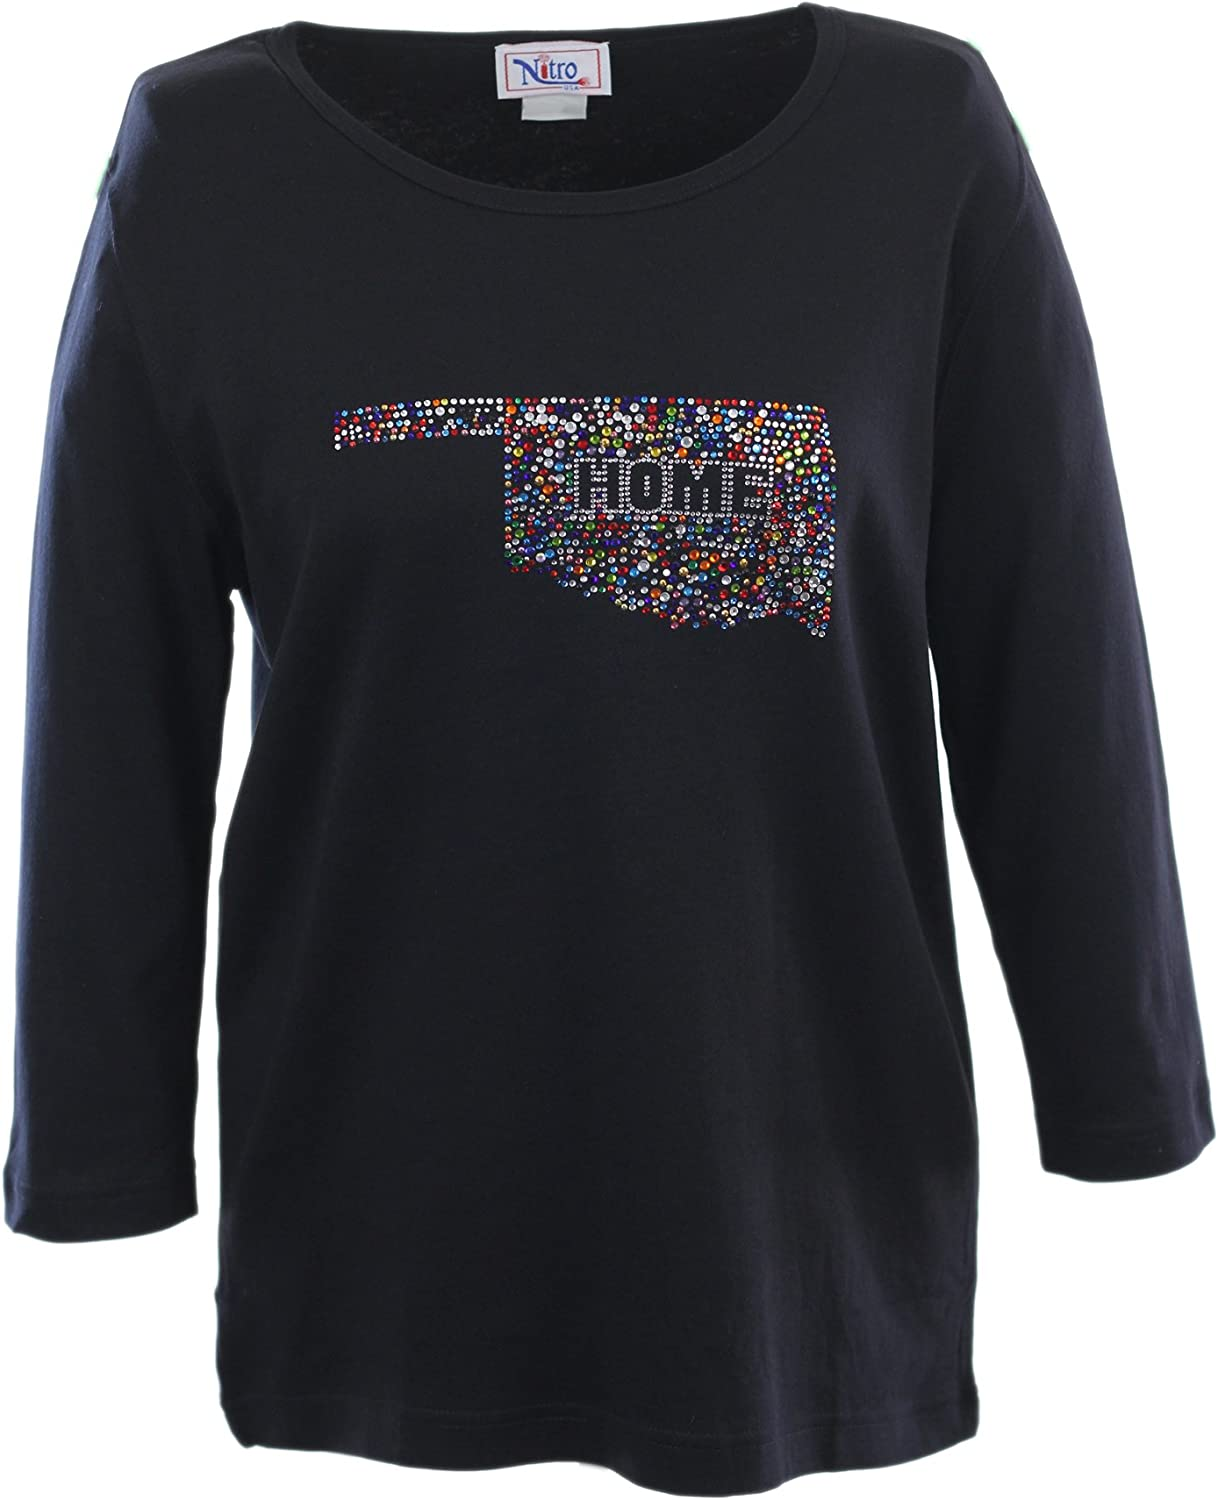 Nitro USA NCAA Womens Crewneck 3//4 Sleeve Top with Bling State Home Confetti